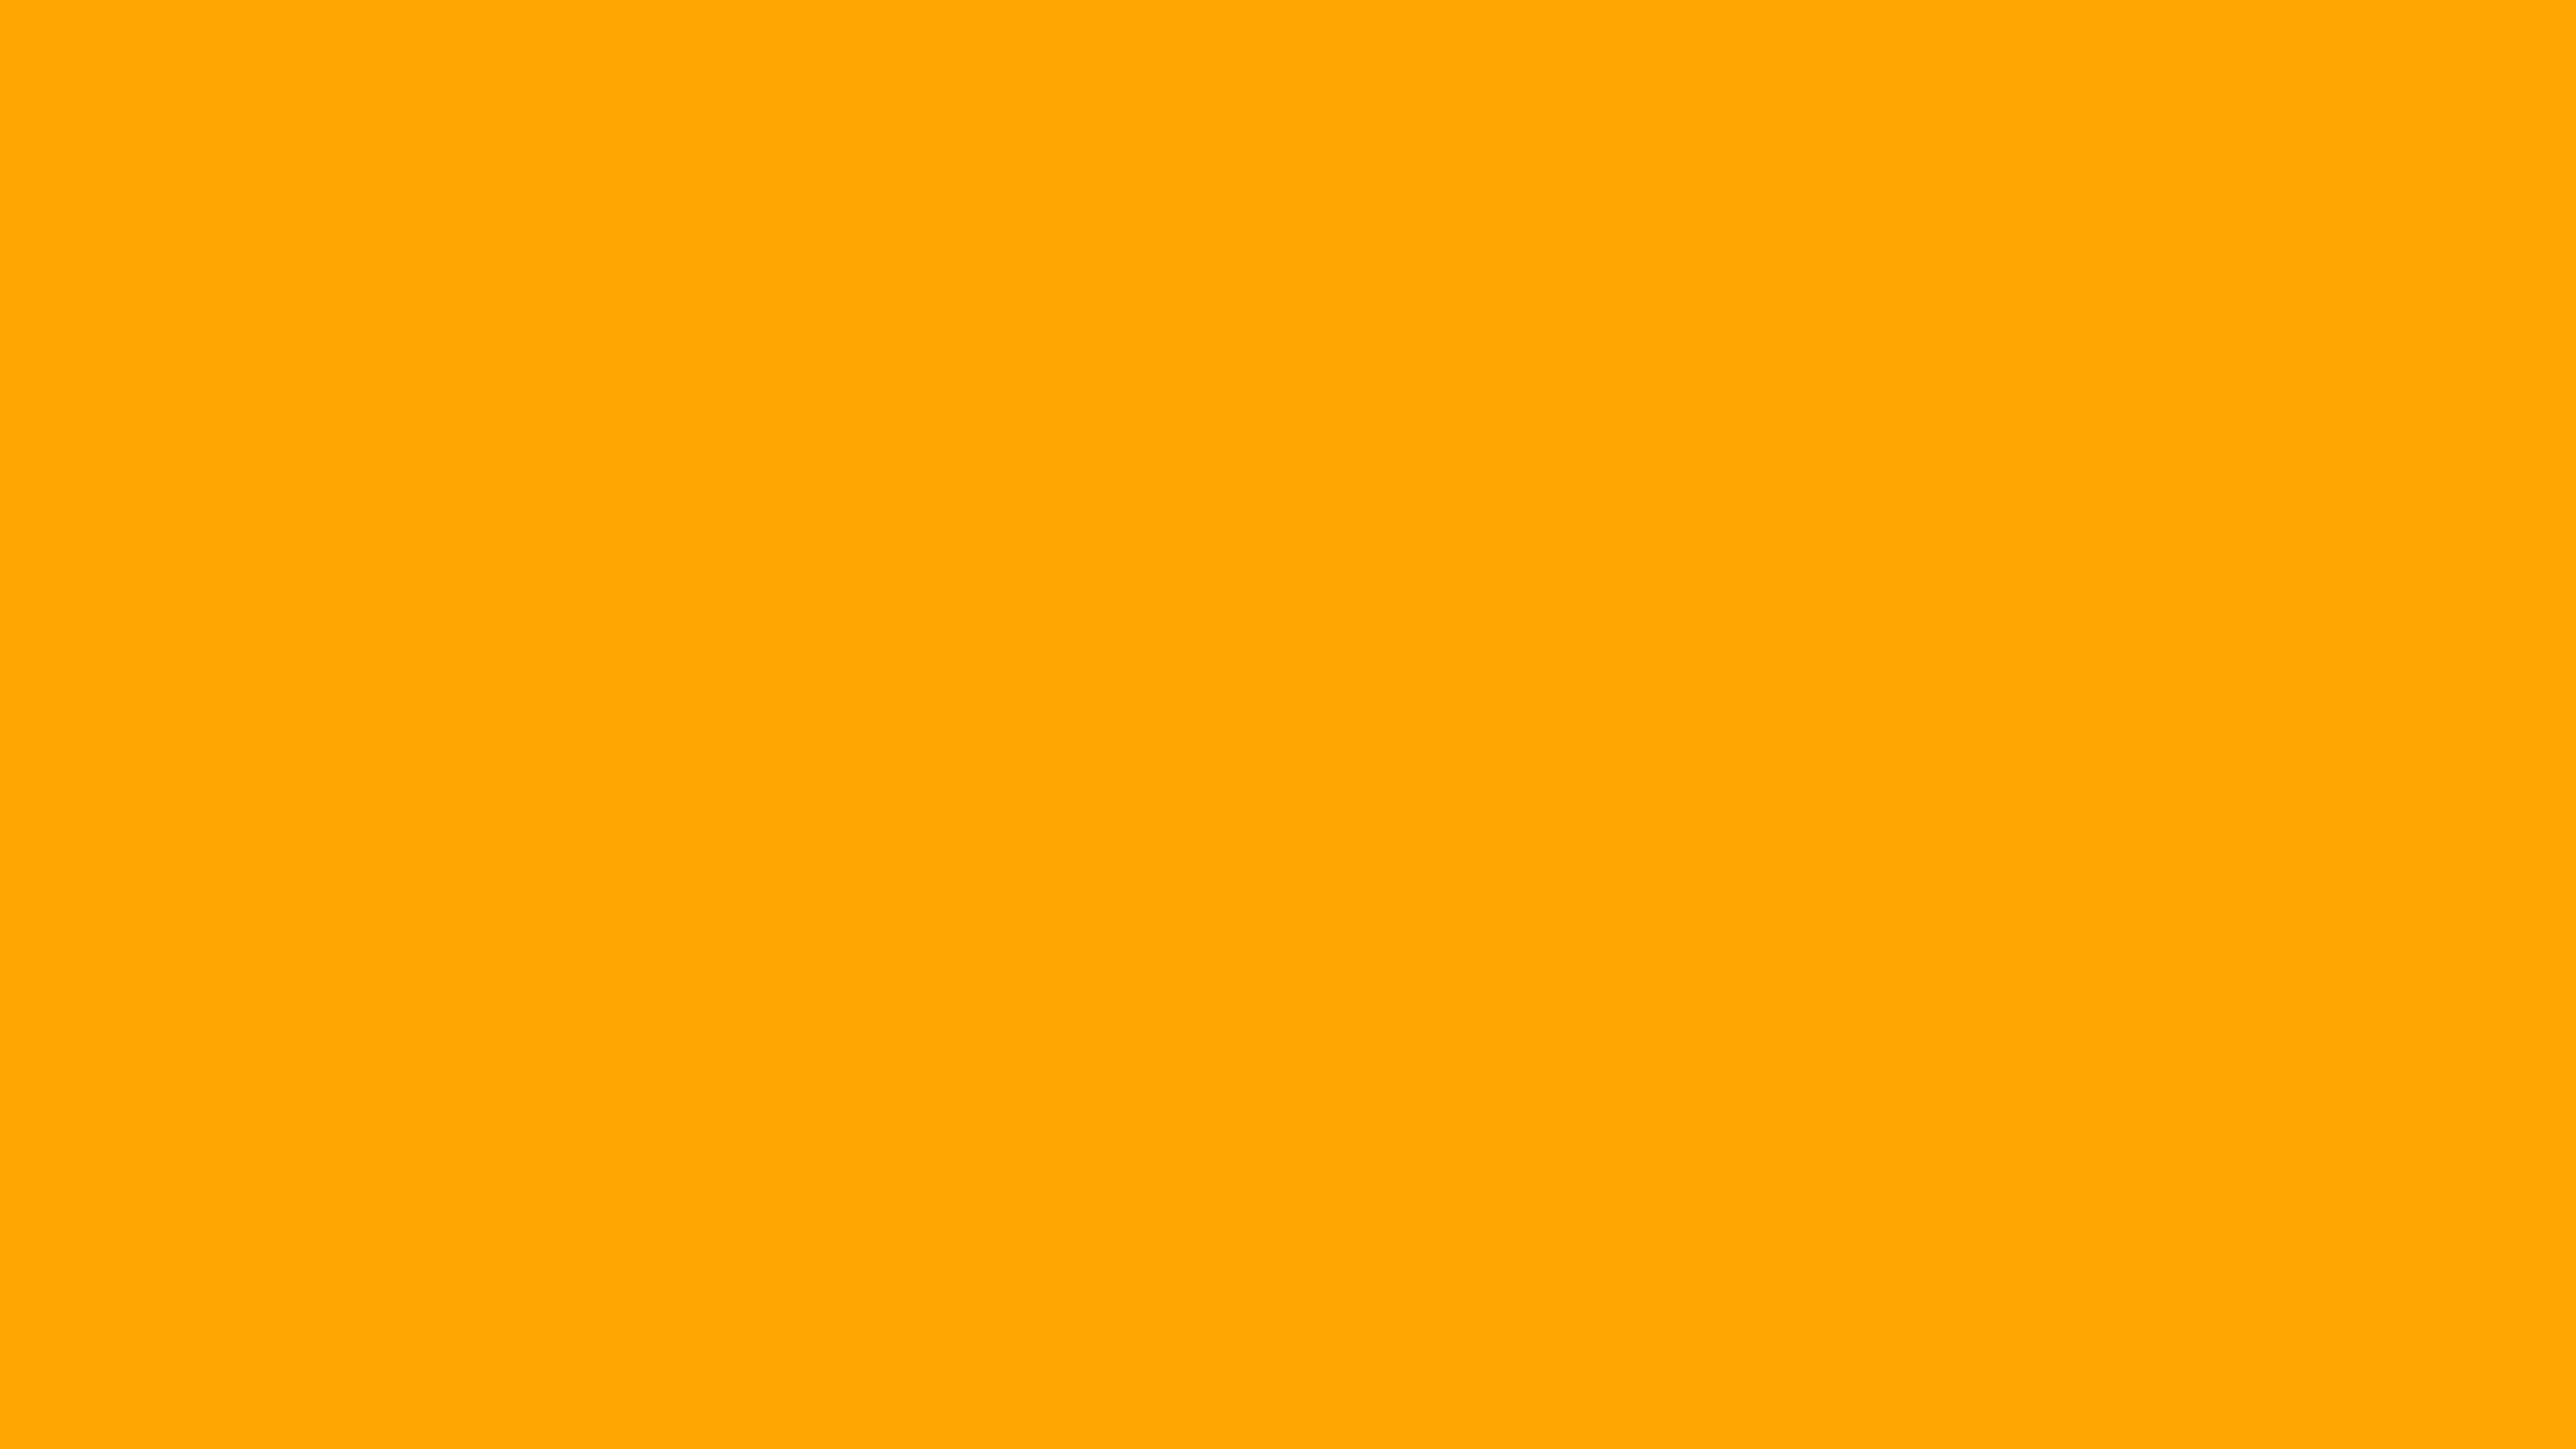 5120x2880 Chrome Yellow Solid Color Background